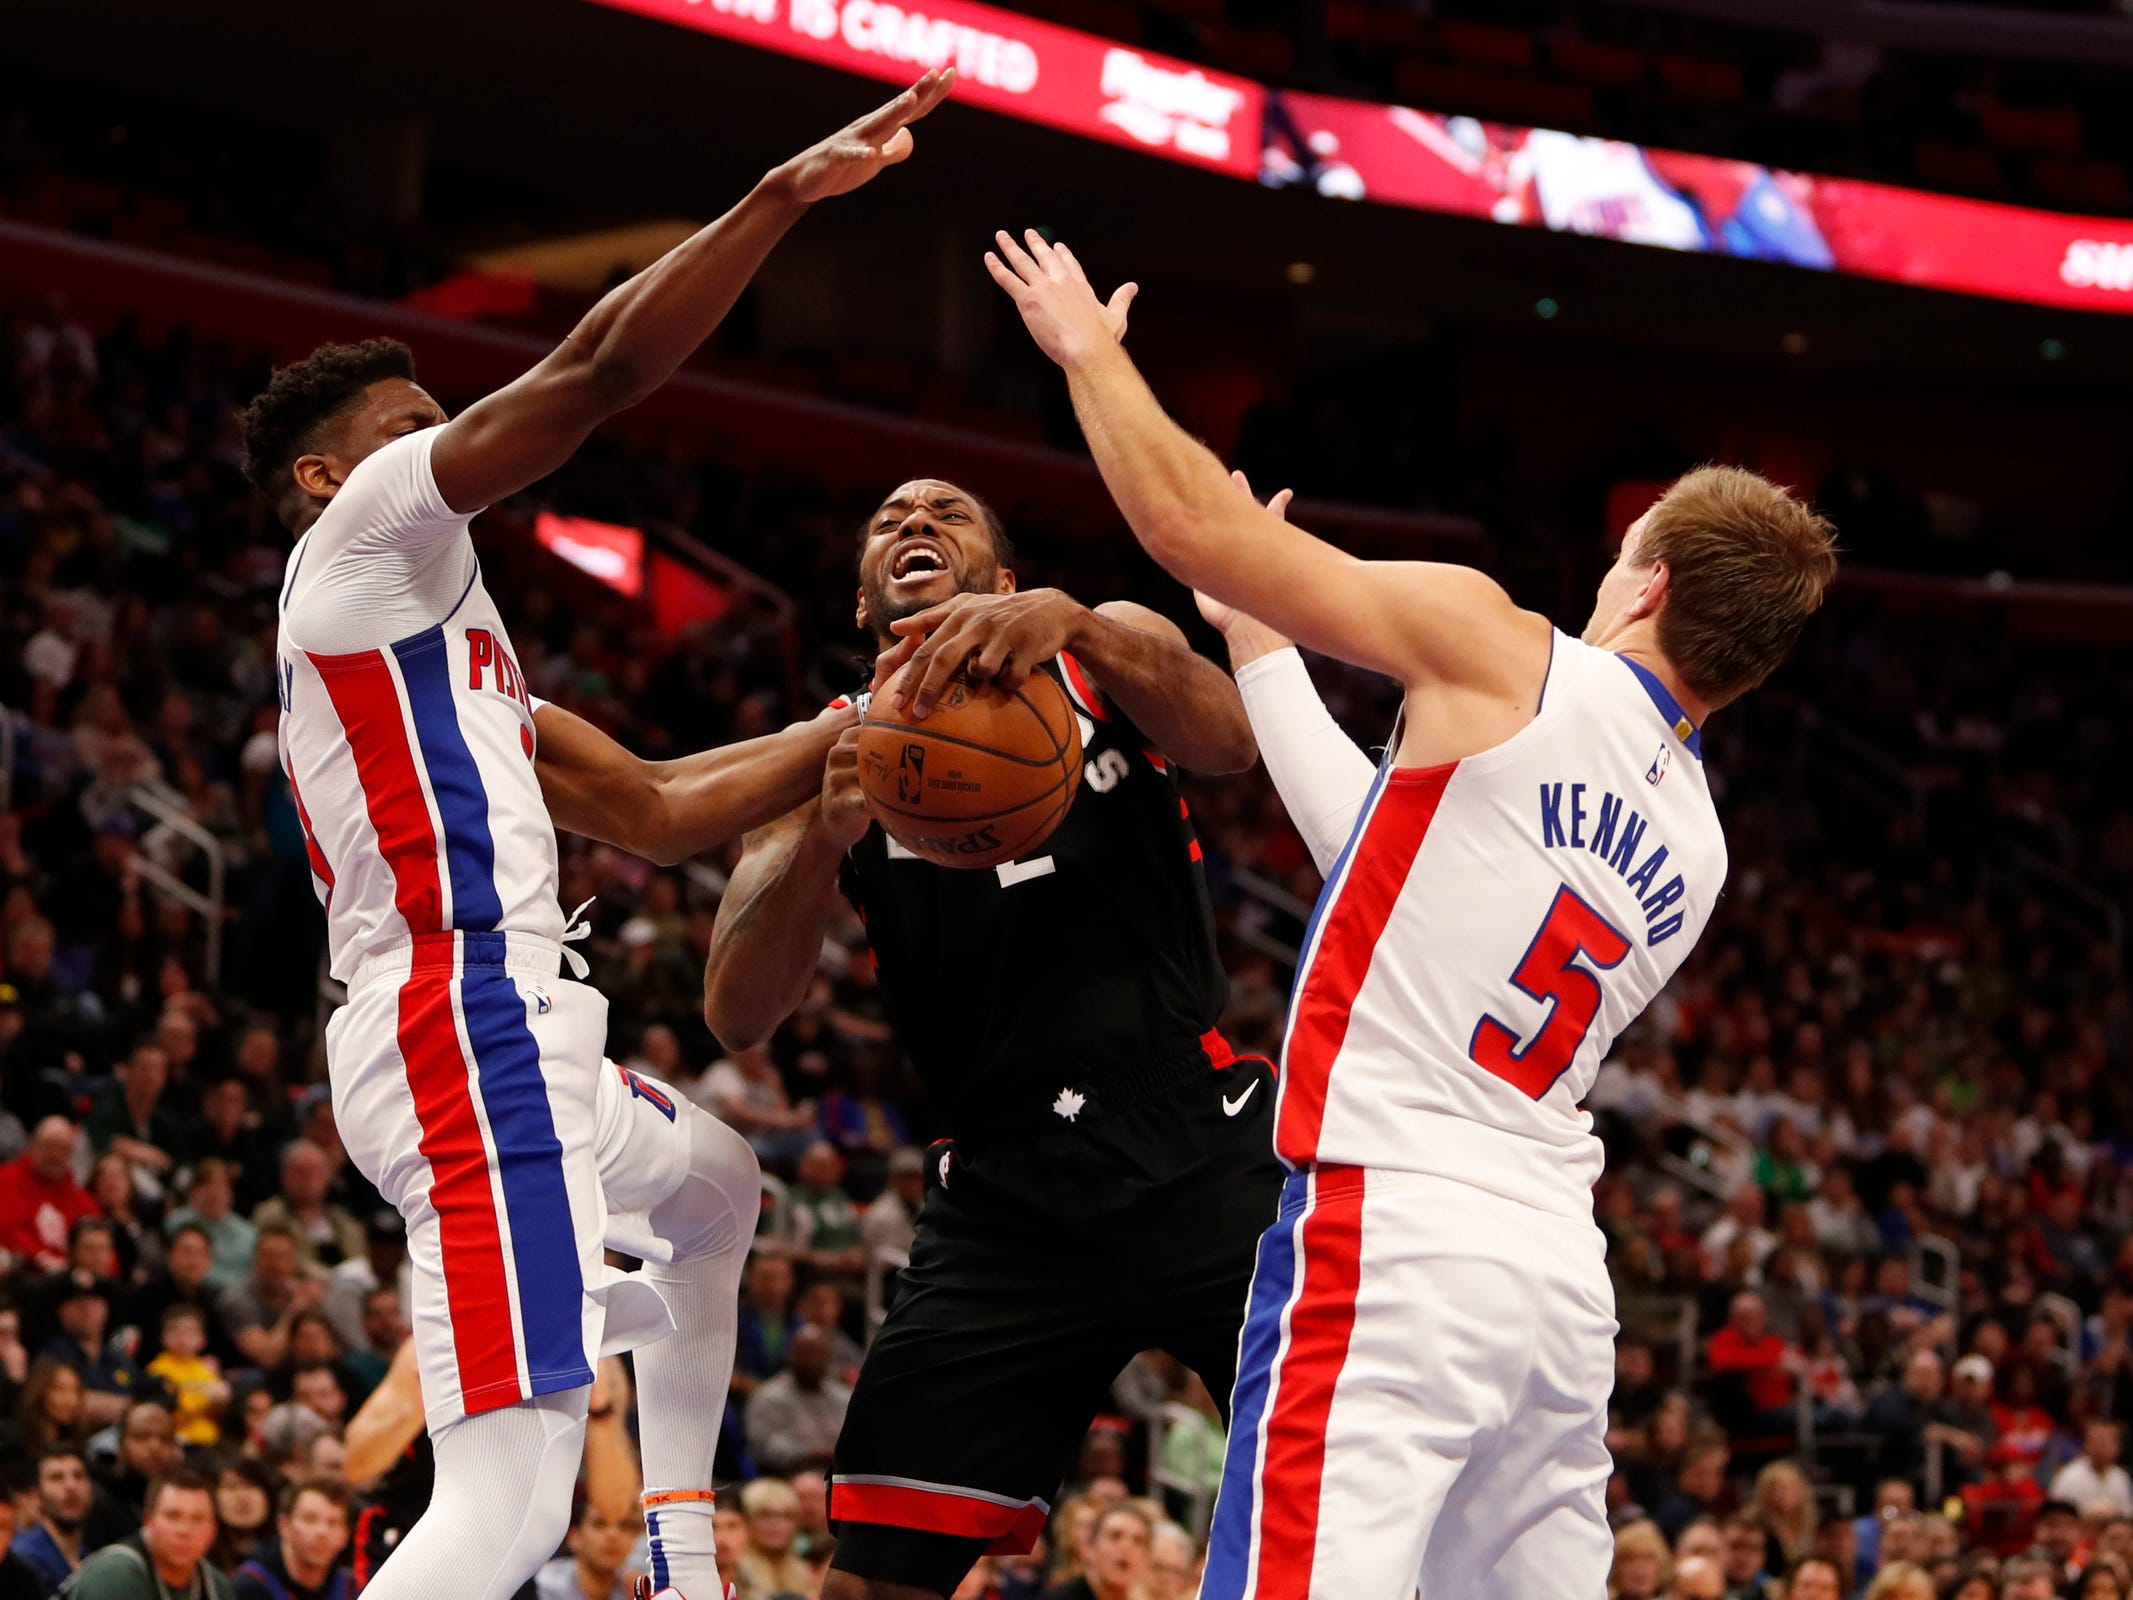 Toronto Raptors forward Kawhi Leonard is defended by Detroit Pistons guards Langston Galloway and Luke Kennard during the fourth quarter at Little Caesars Arena, Sunday, March 17, 2019.